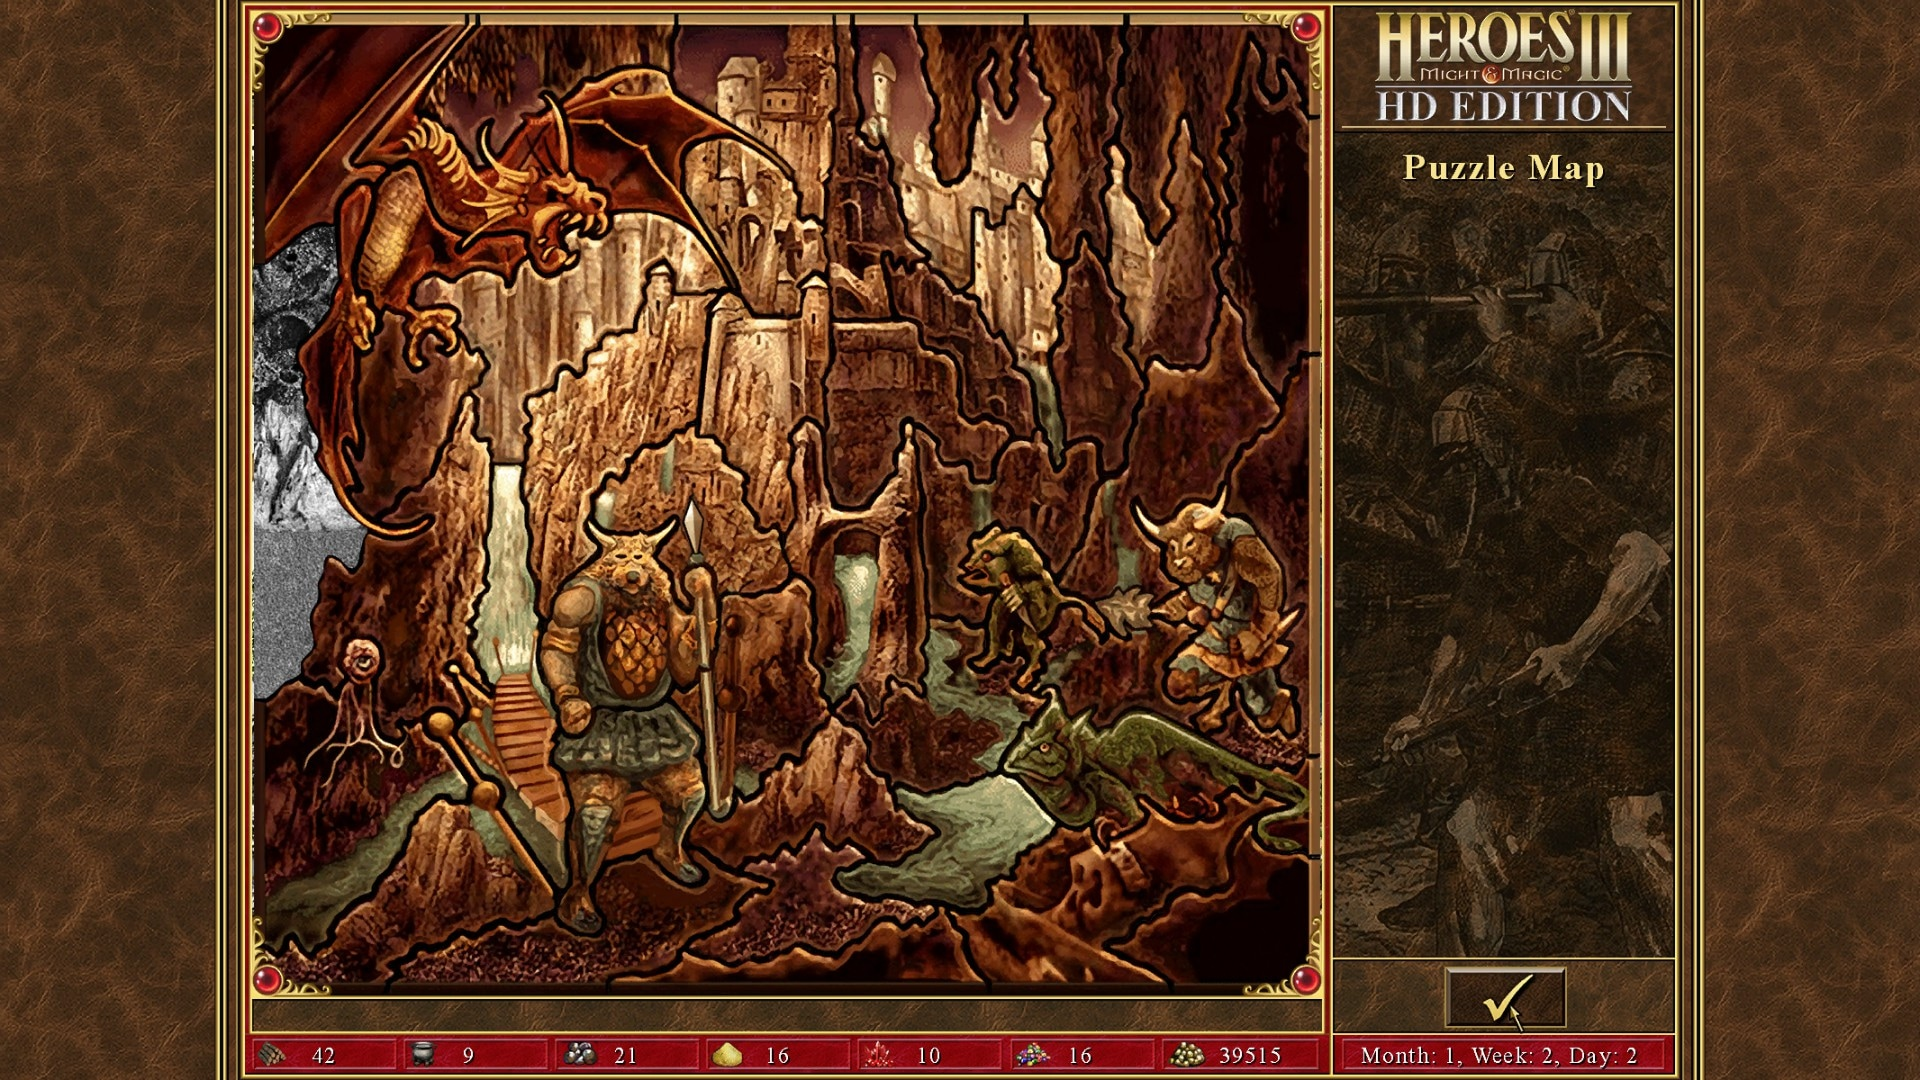 Heroes of Might & Magic III HD Edition (PC) - Steam Key - GLOBAL - 4